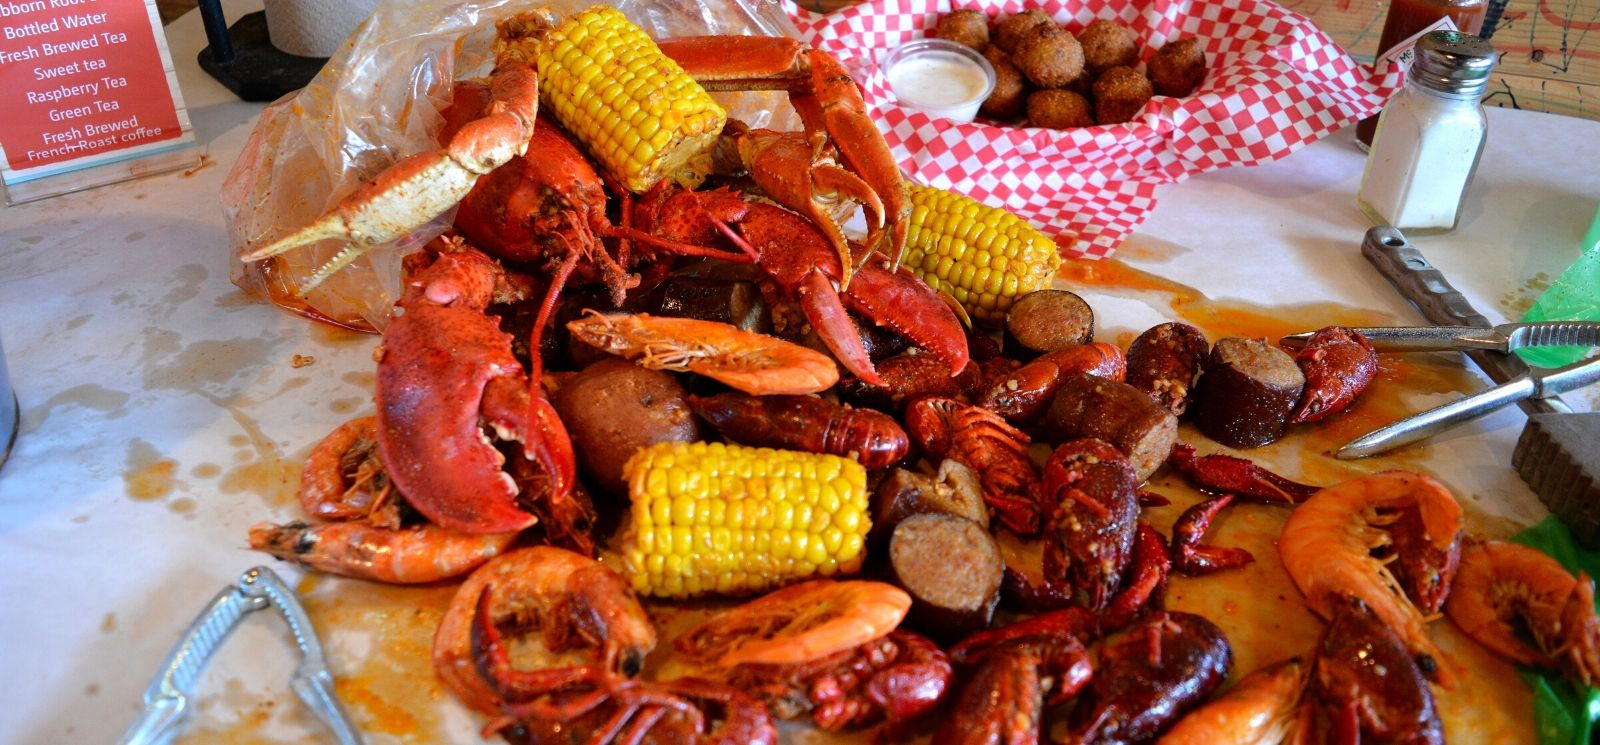 Proof the Seafood Boil Restaurant Trend is Here to Stay